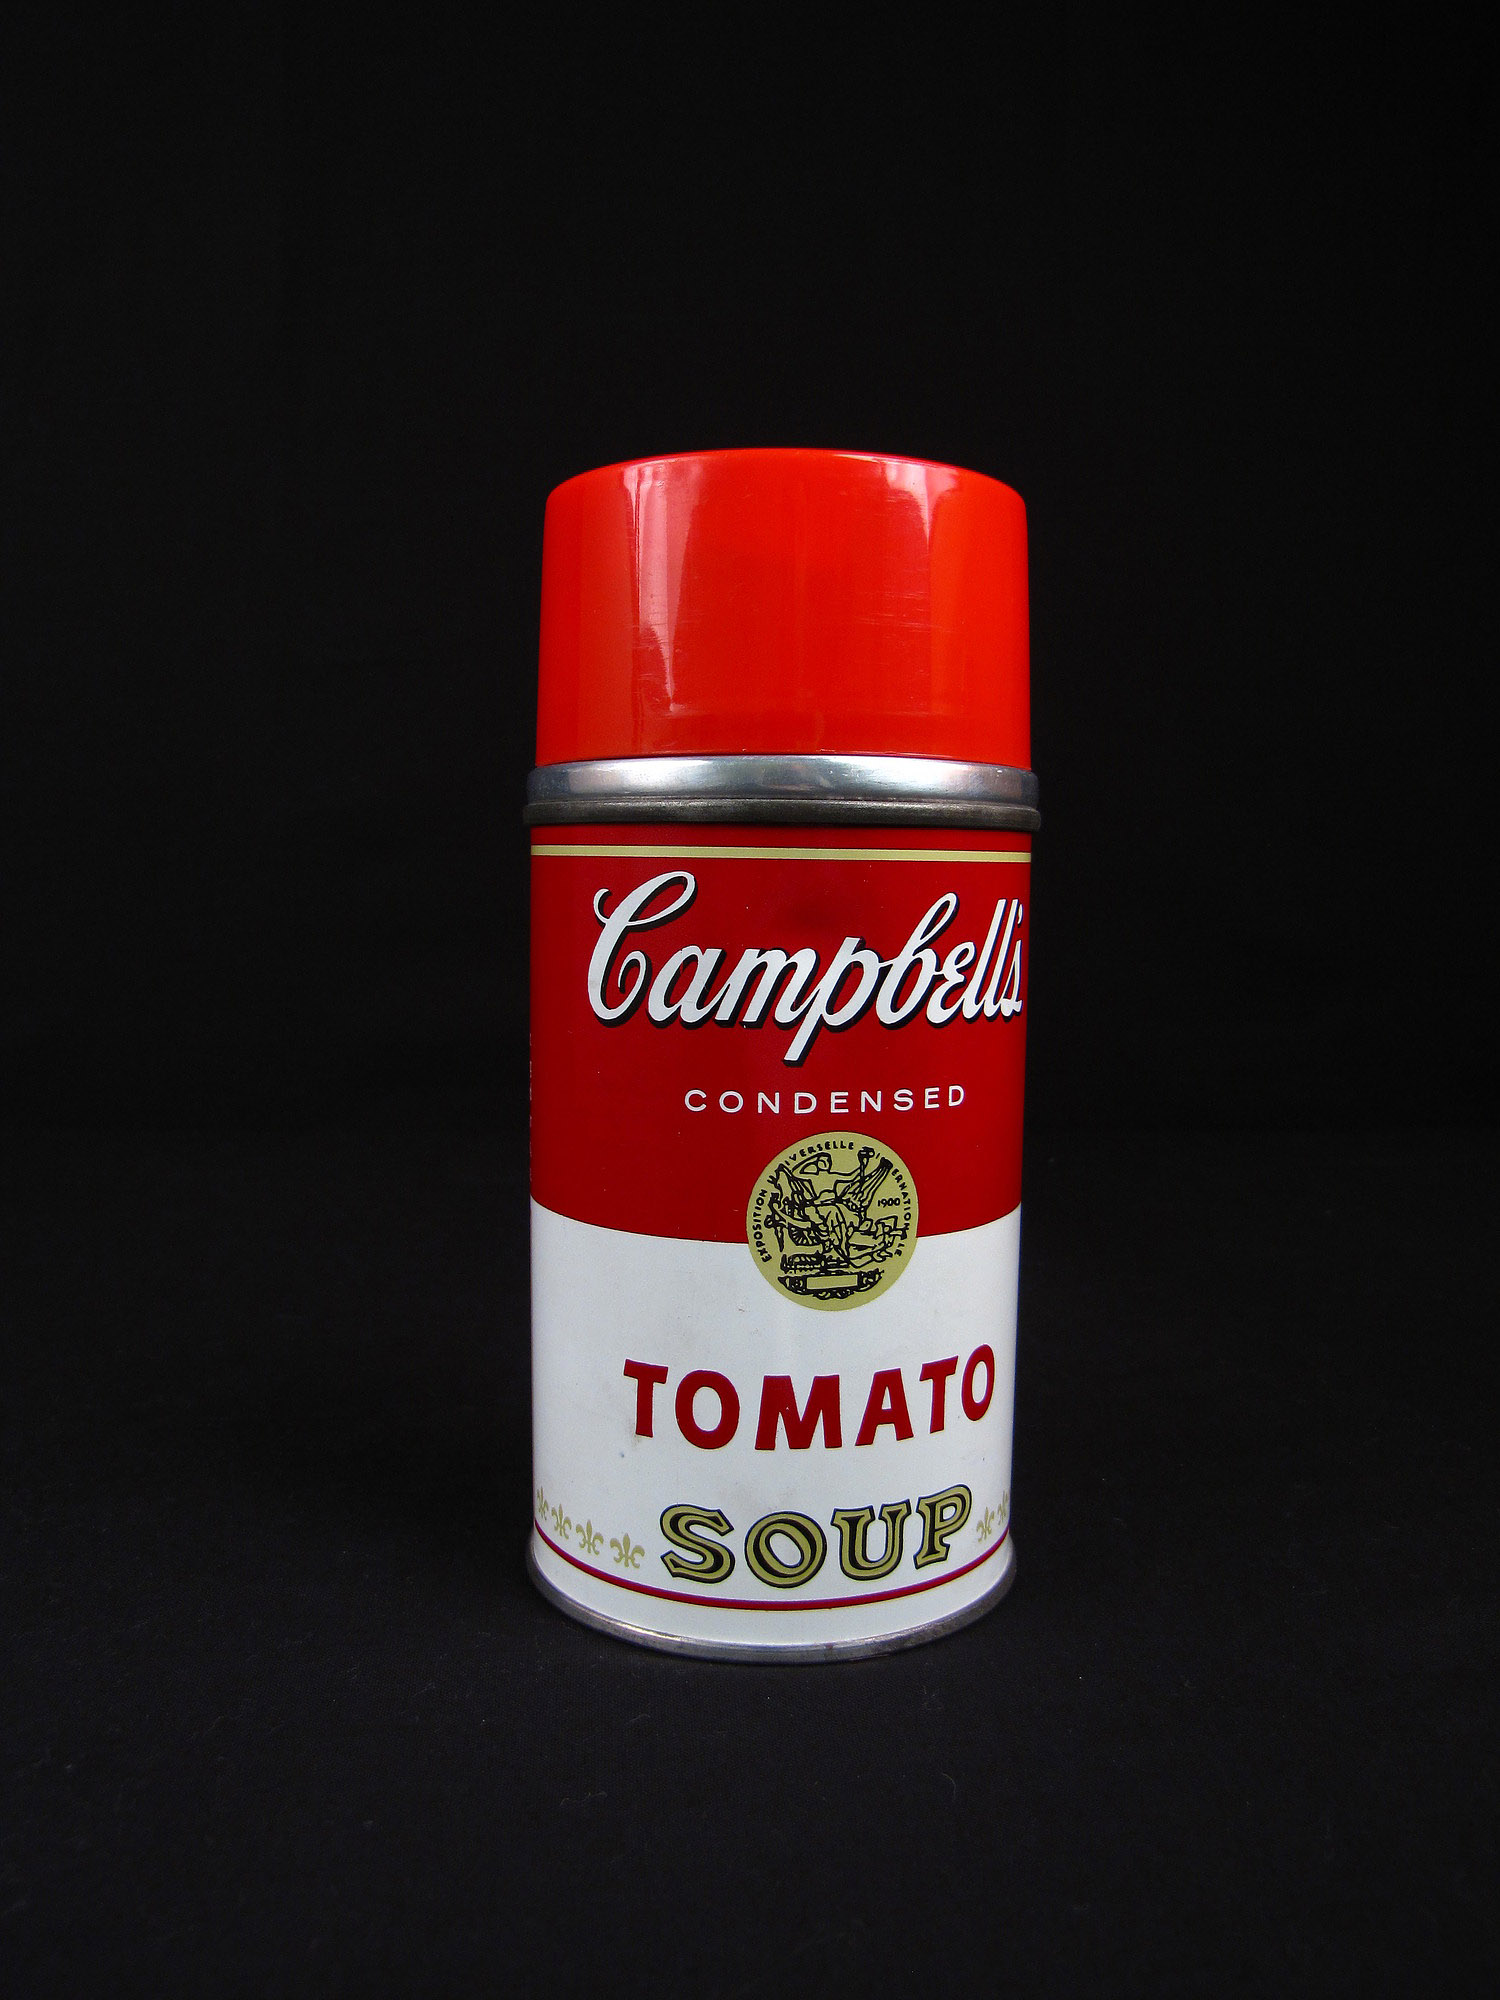 Campbell's Tomato Soup thermos